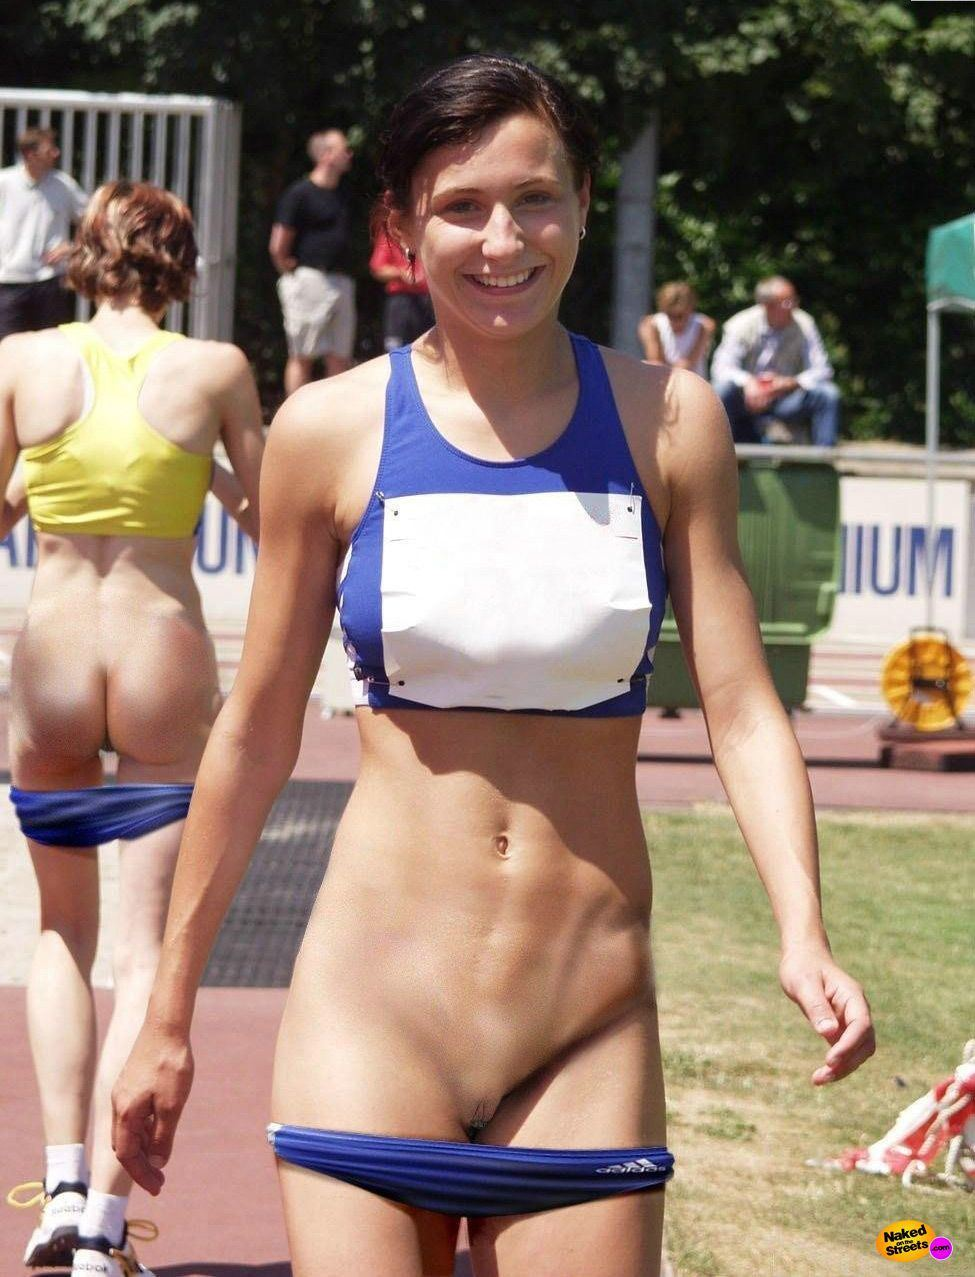 best of Vagina girls Nude olympic